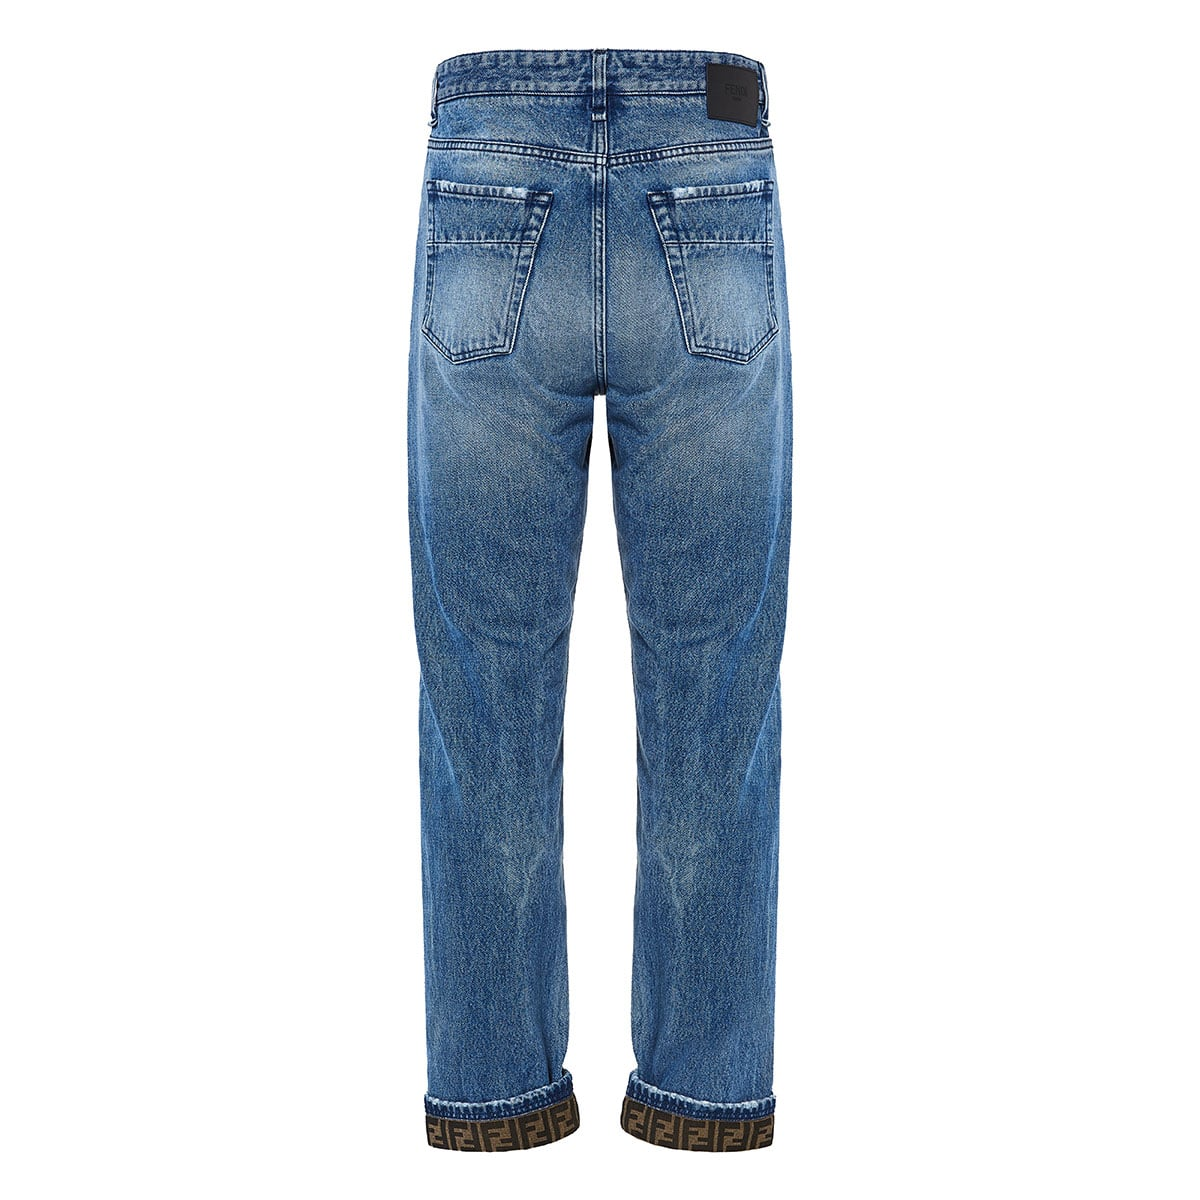 FF-detailed distressed jeans